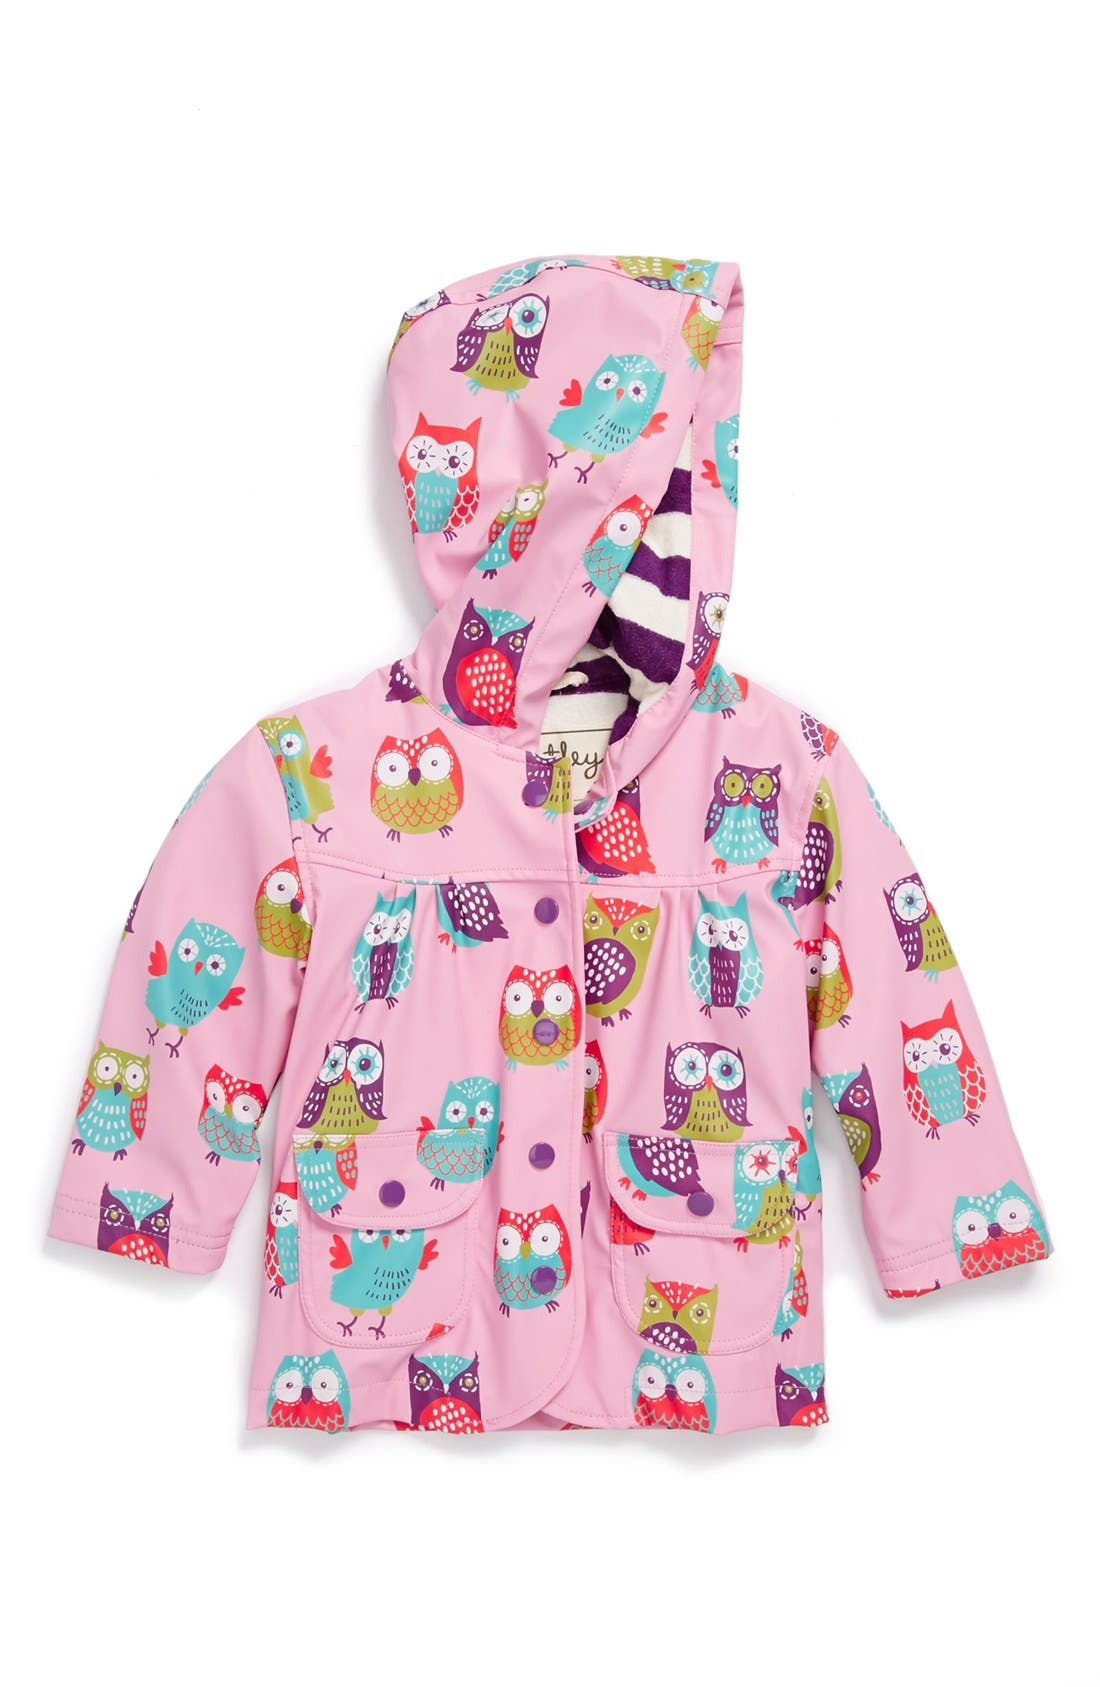 Alternate Image 1 Selected - Hatley 'Party Owls' Rain Jacket (Toddler Girls, Little Girls & Big Girls)